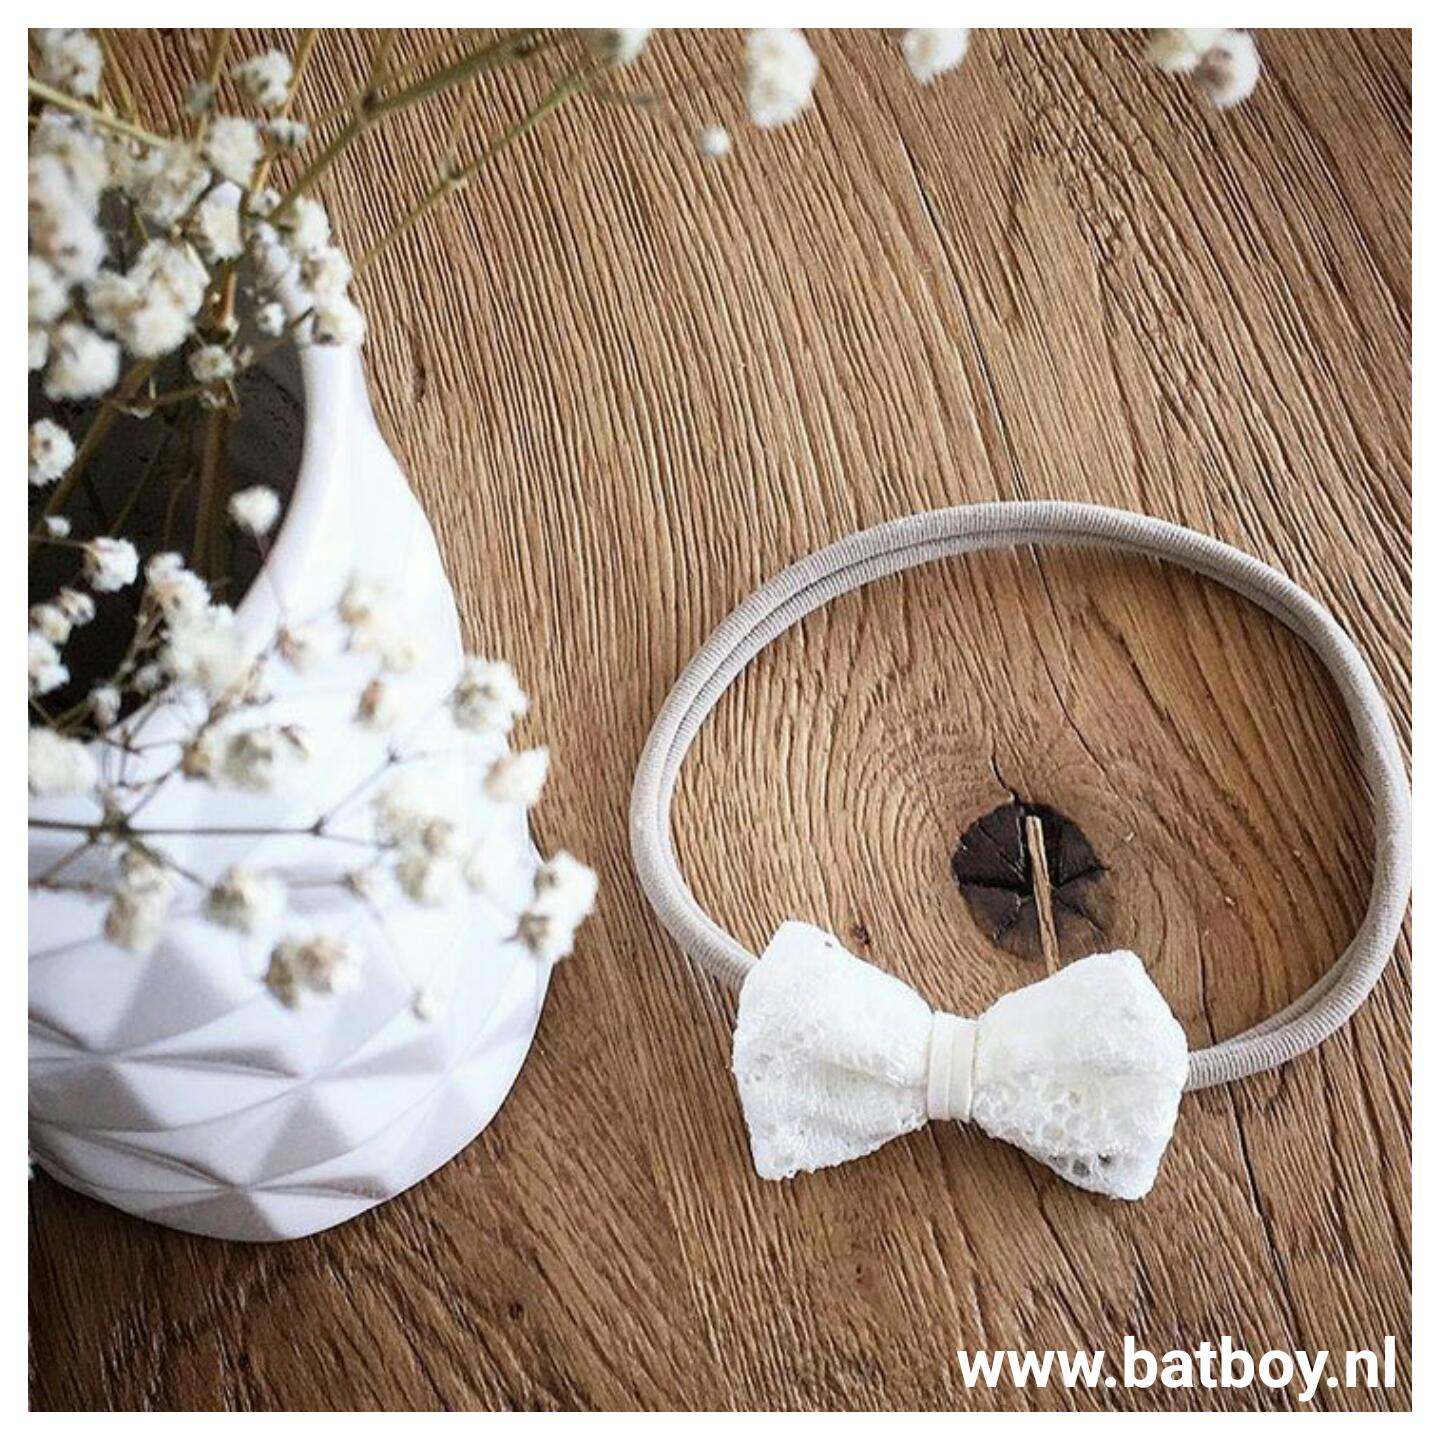 haarbandjes, baby musthaves, baby, musthaves, batboy, accessoires